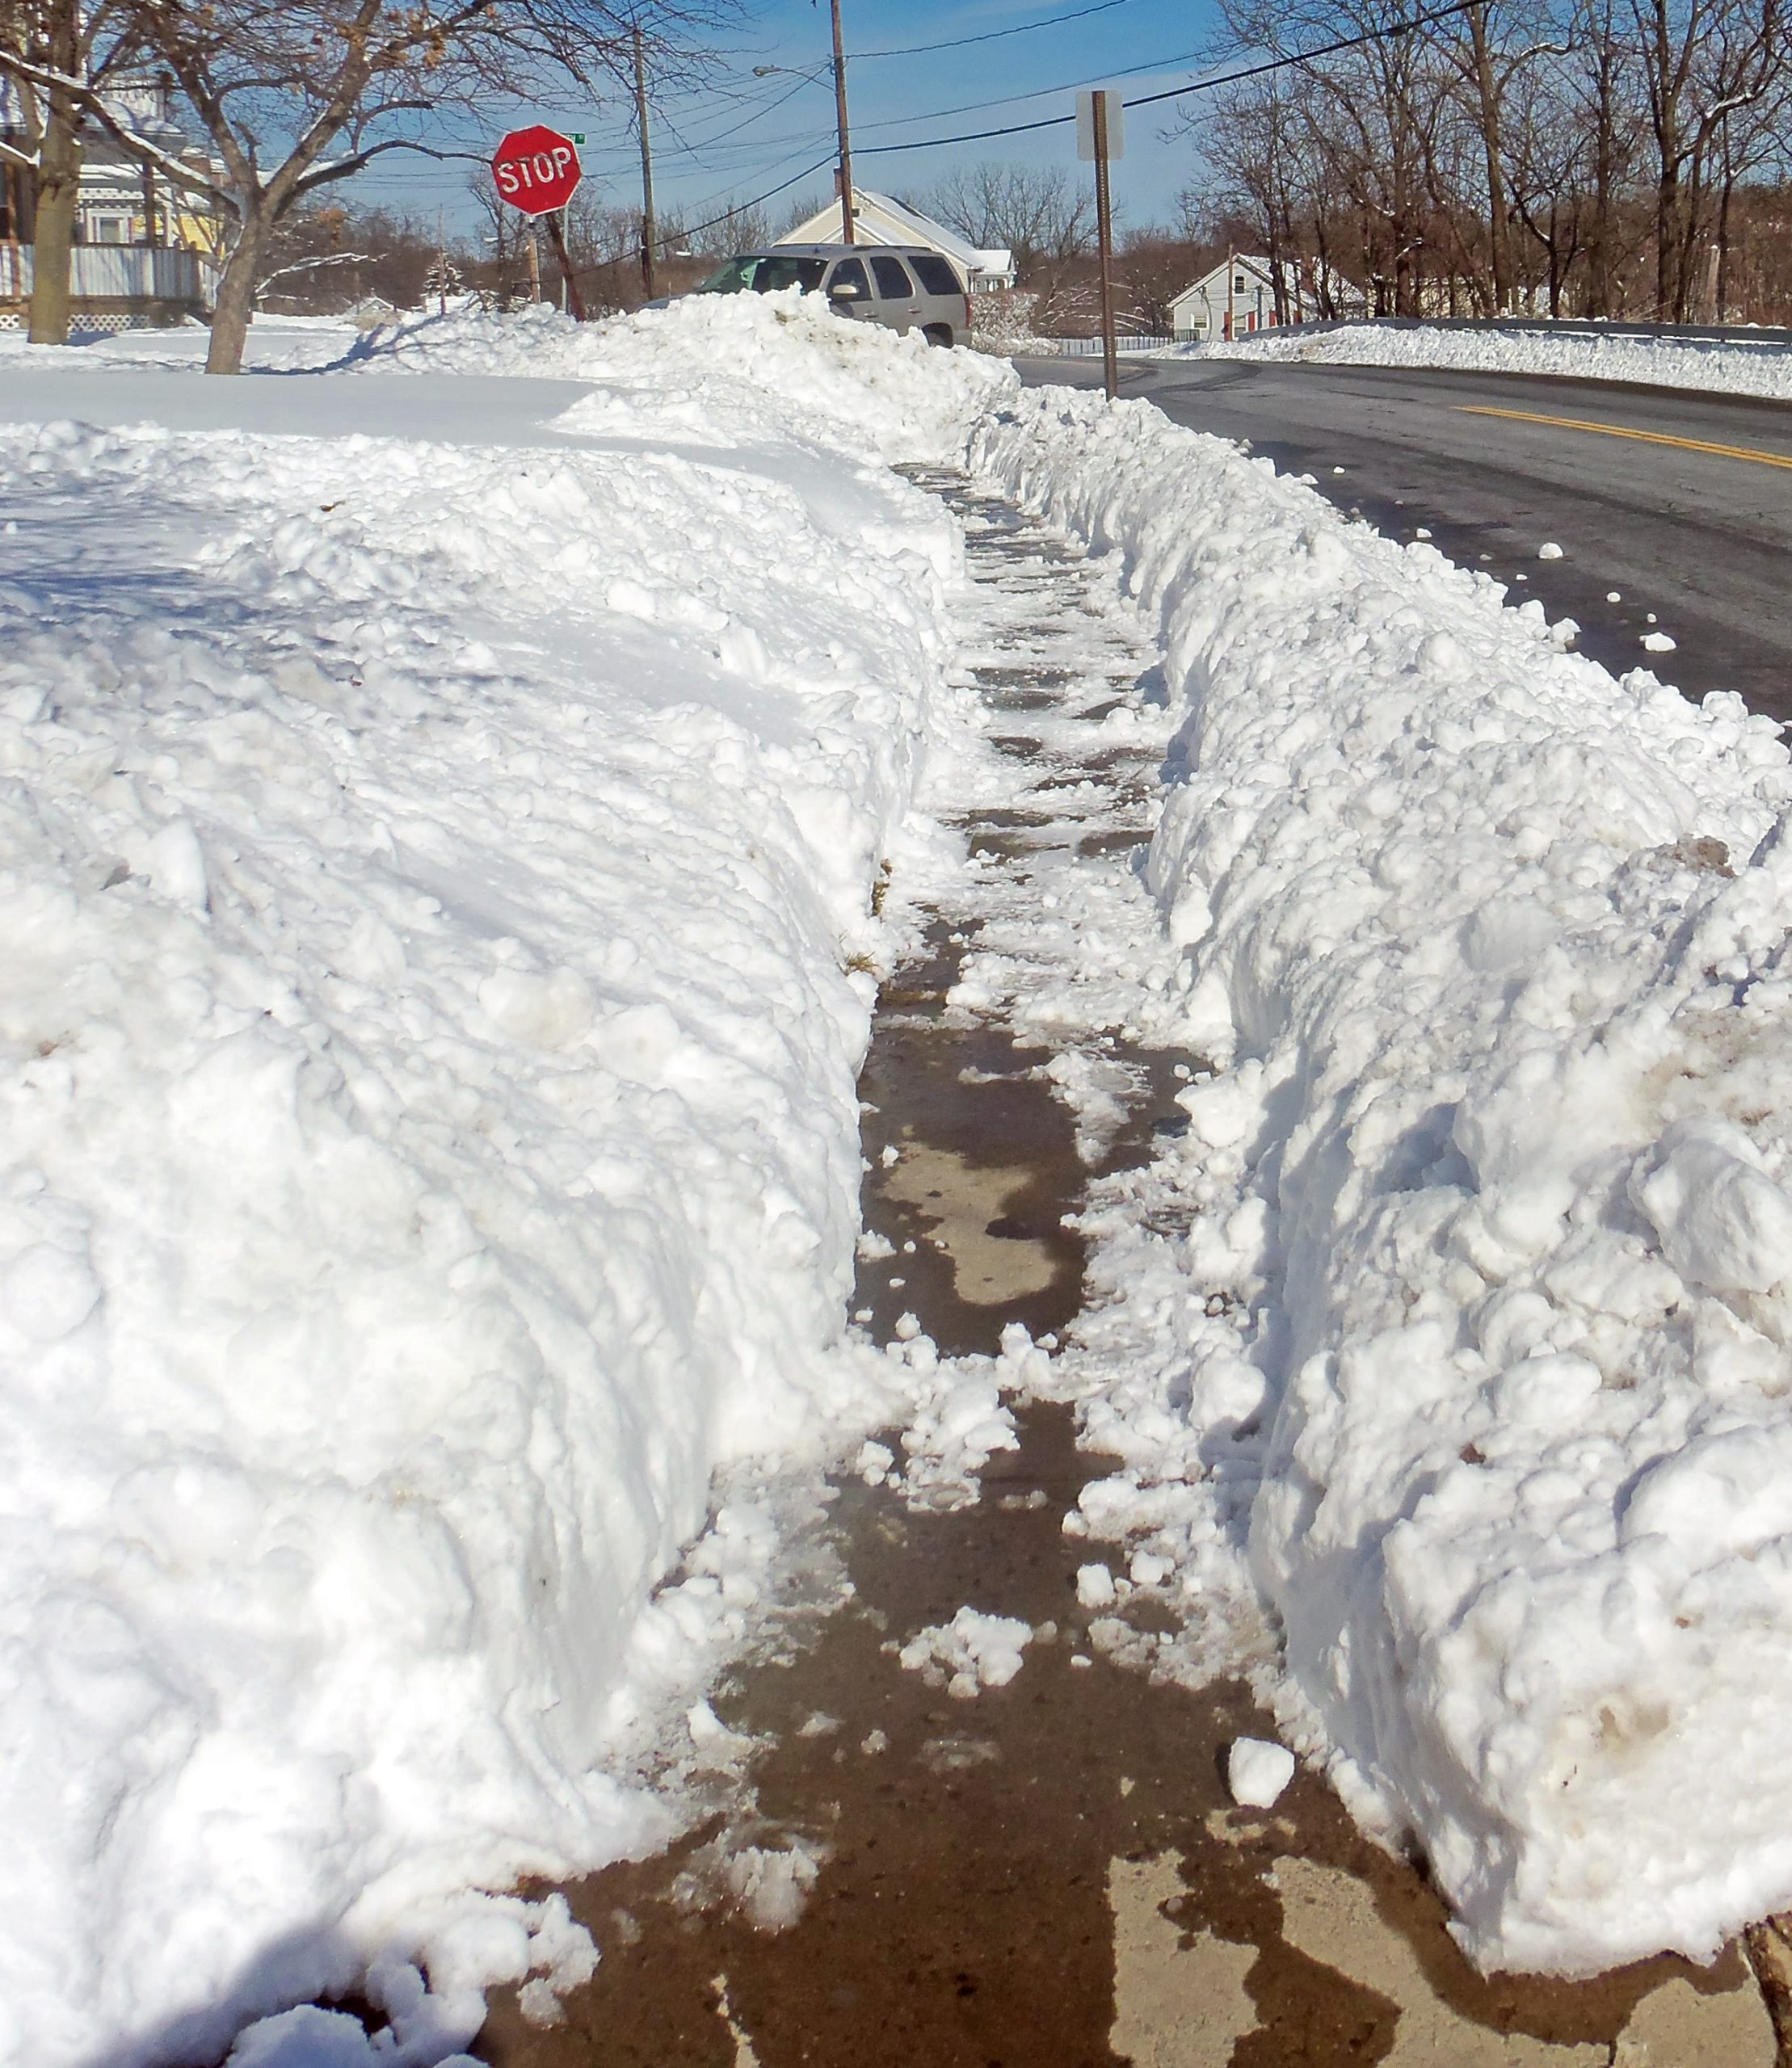 A Kamloops councillor wants to give a certain aspect of snow removal another look